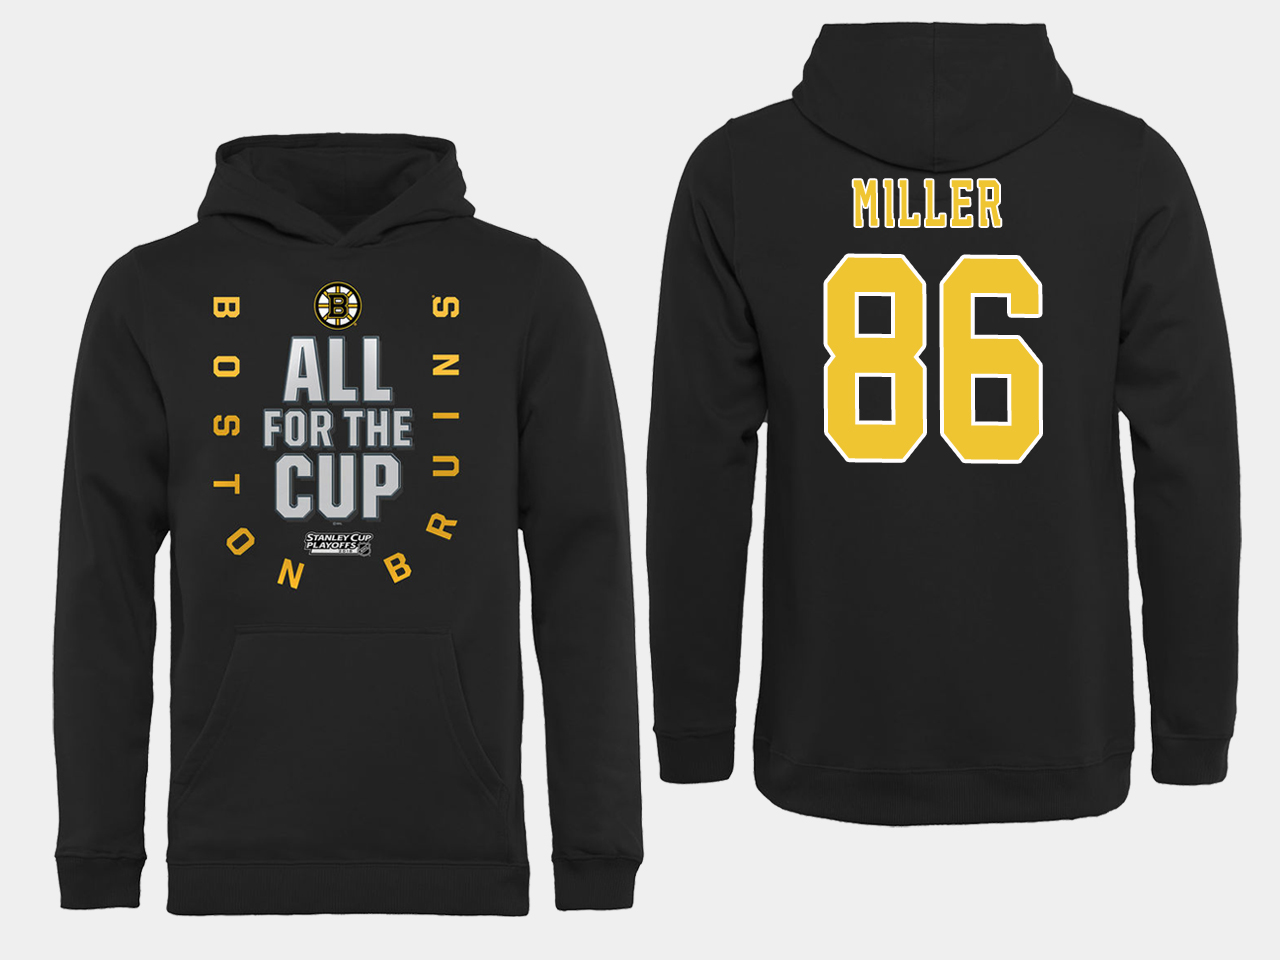 NHL Men Boston Bruins 86 Miller Black All for the Cup Hoodie